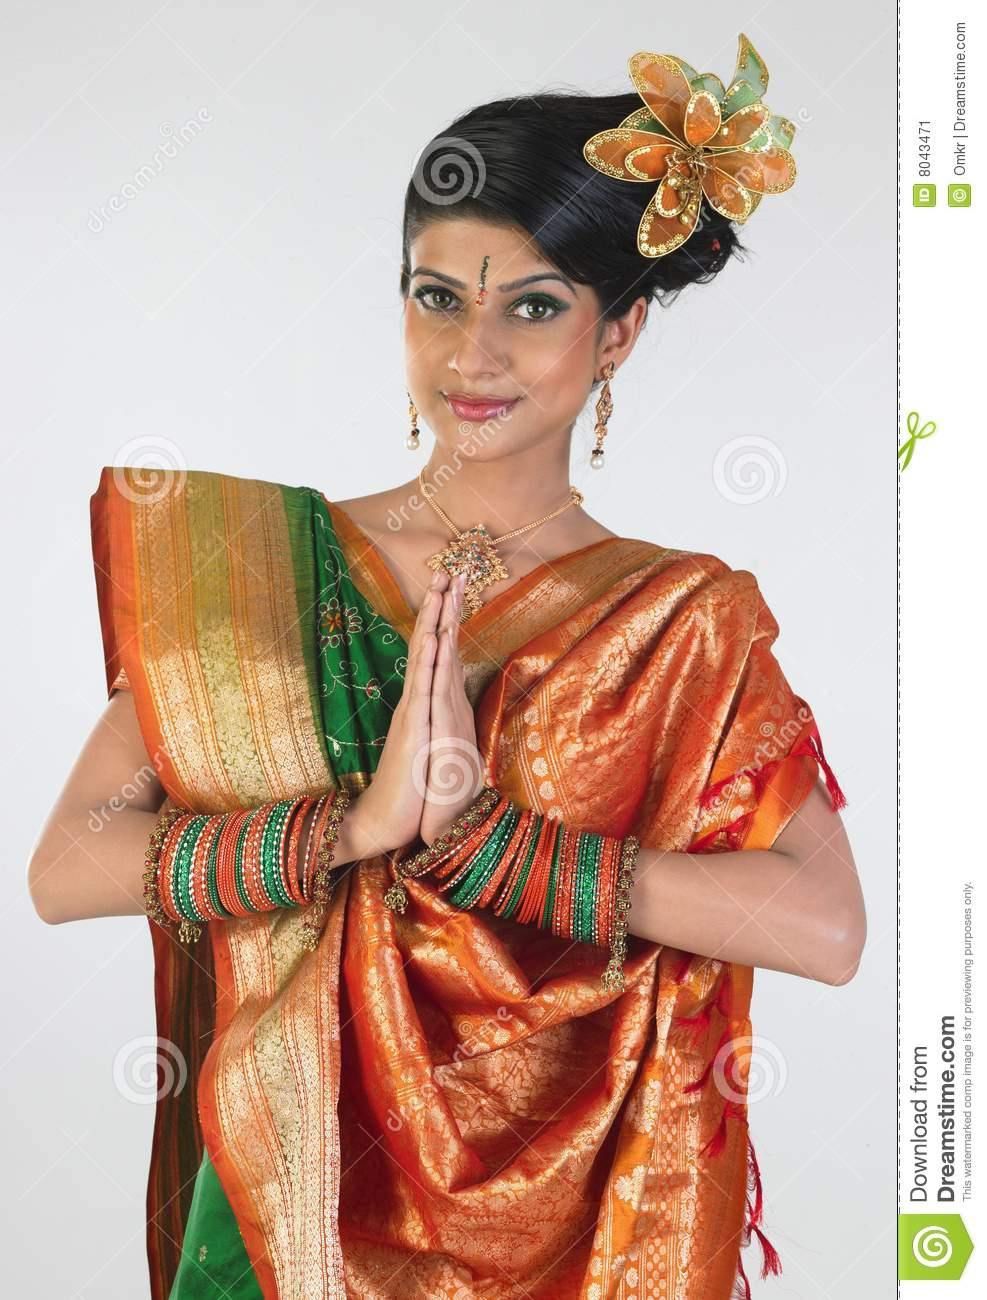 Woman In Sari With Welcome Posture Stock Image Image